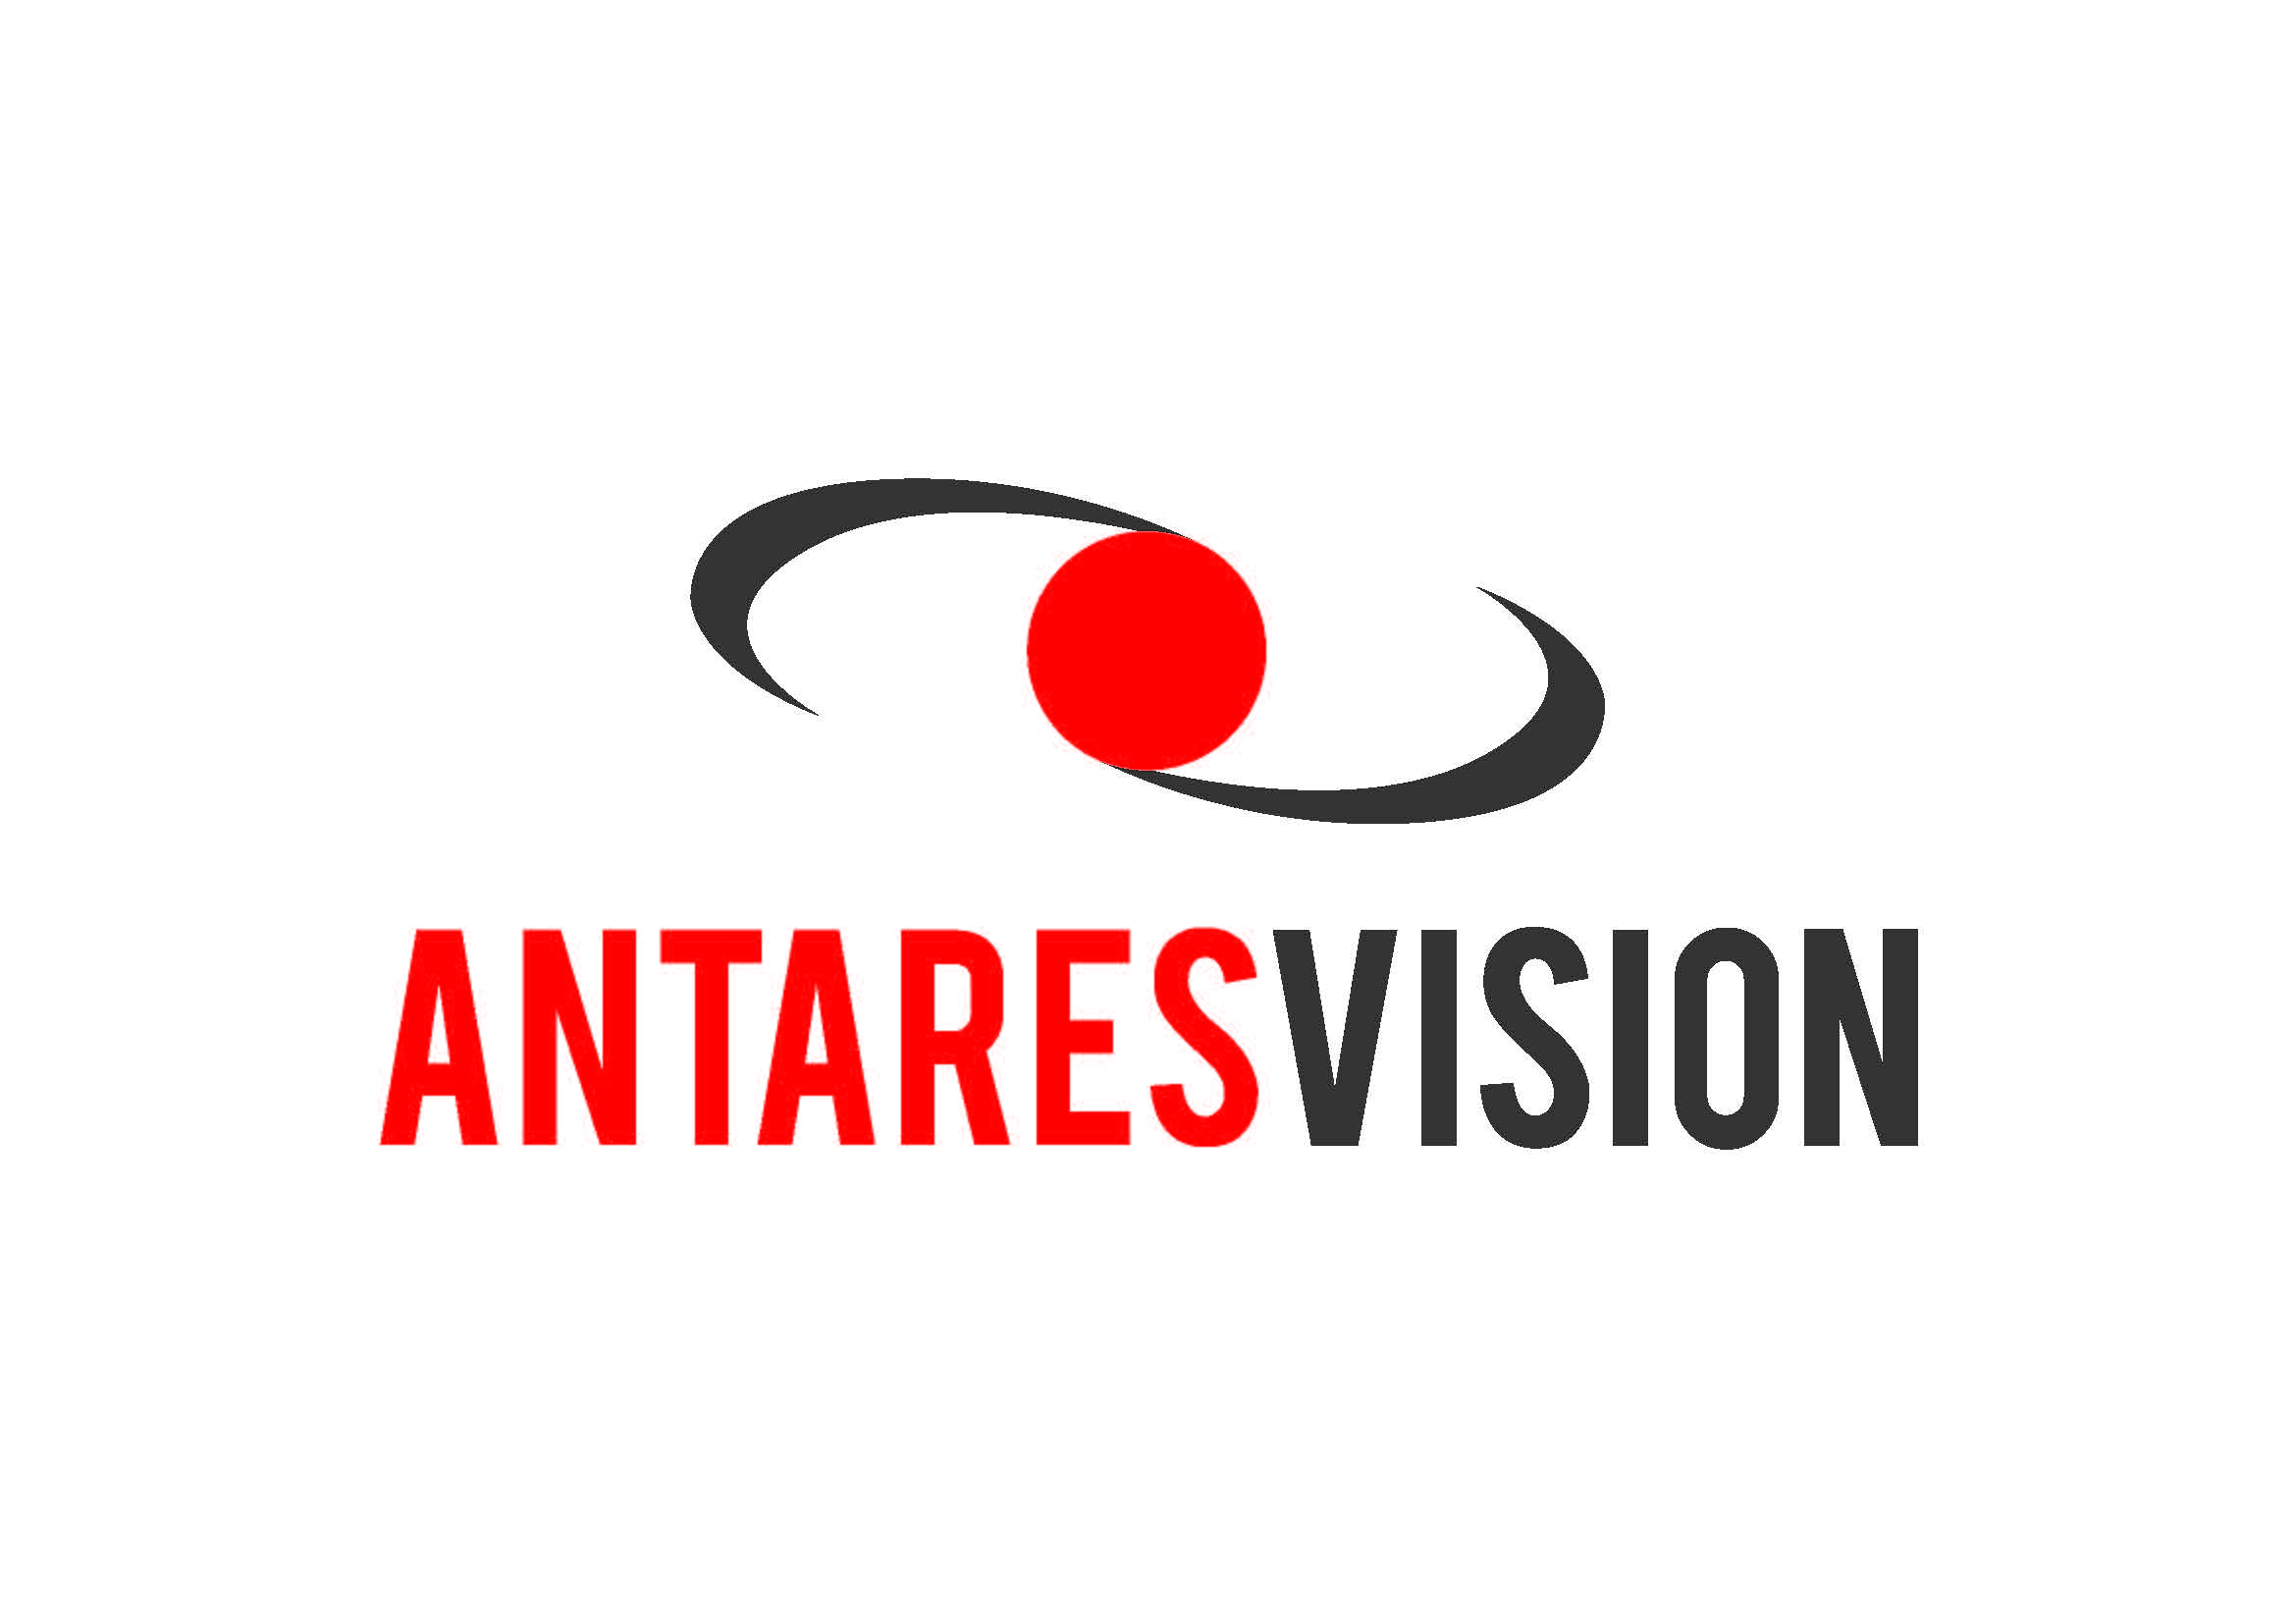 Antares Vision: Tracking the Future. See them at Jobs Expo Galway